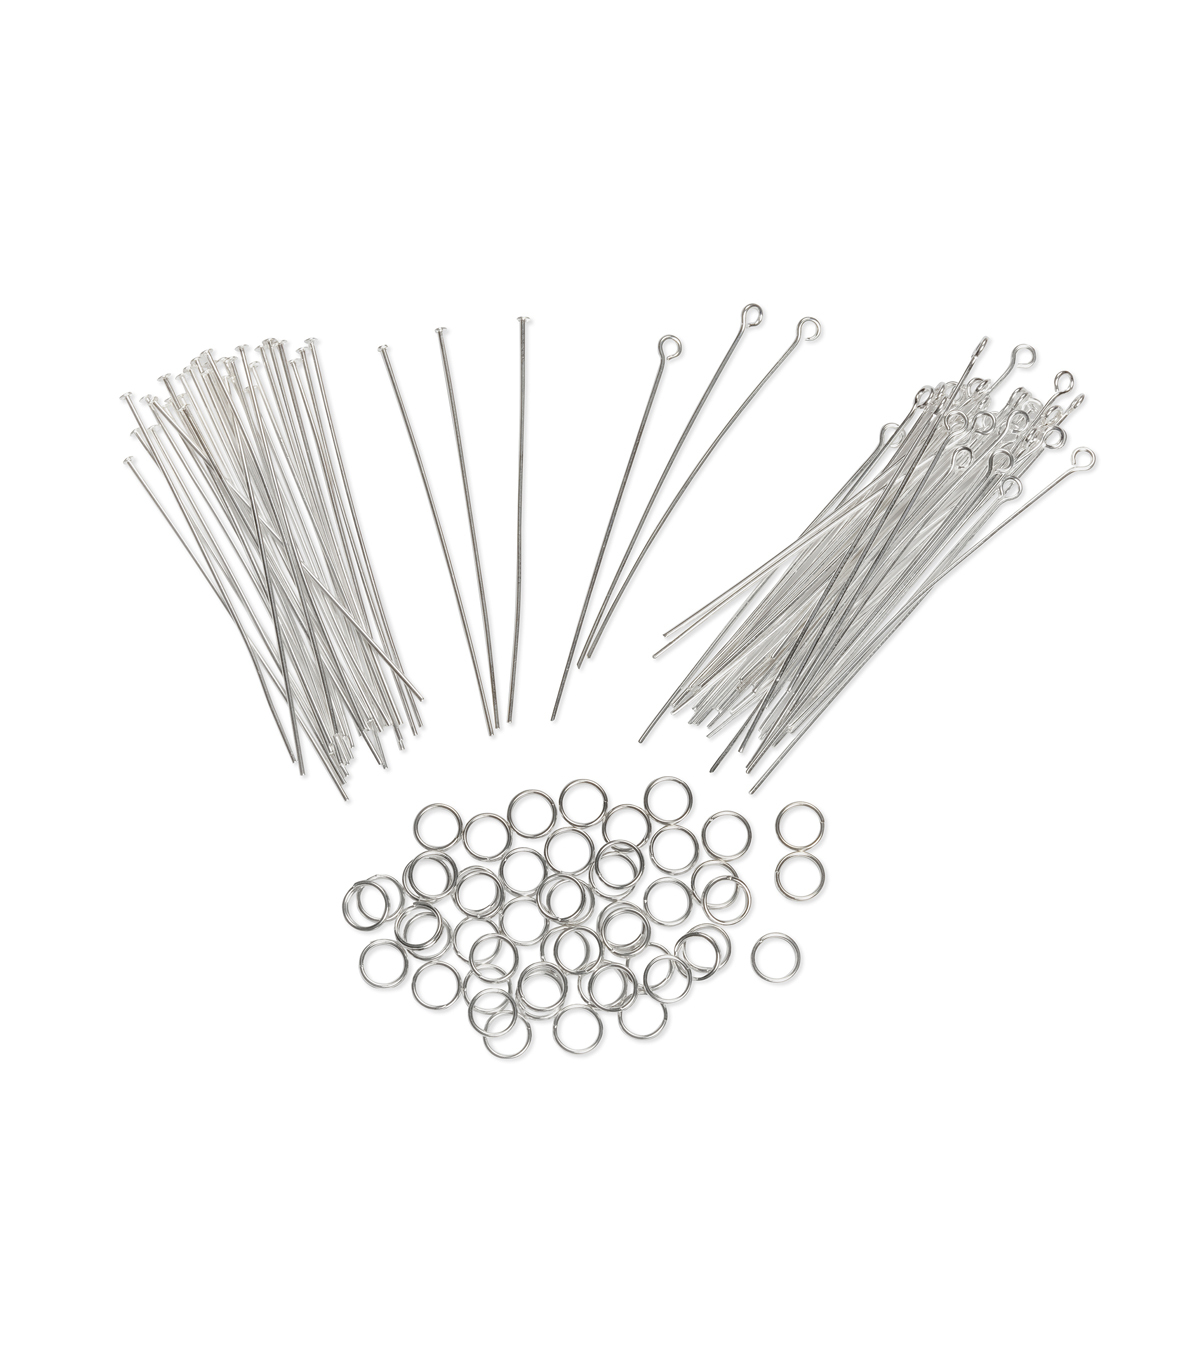 Jewelry Finding Assortment Eye pin/Headpin/Jump Ring, Br. Silver, 122pc.